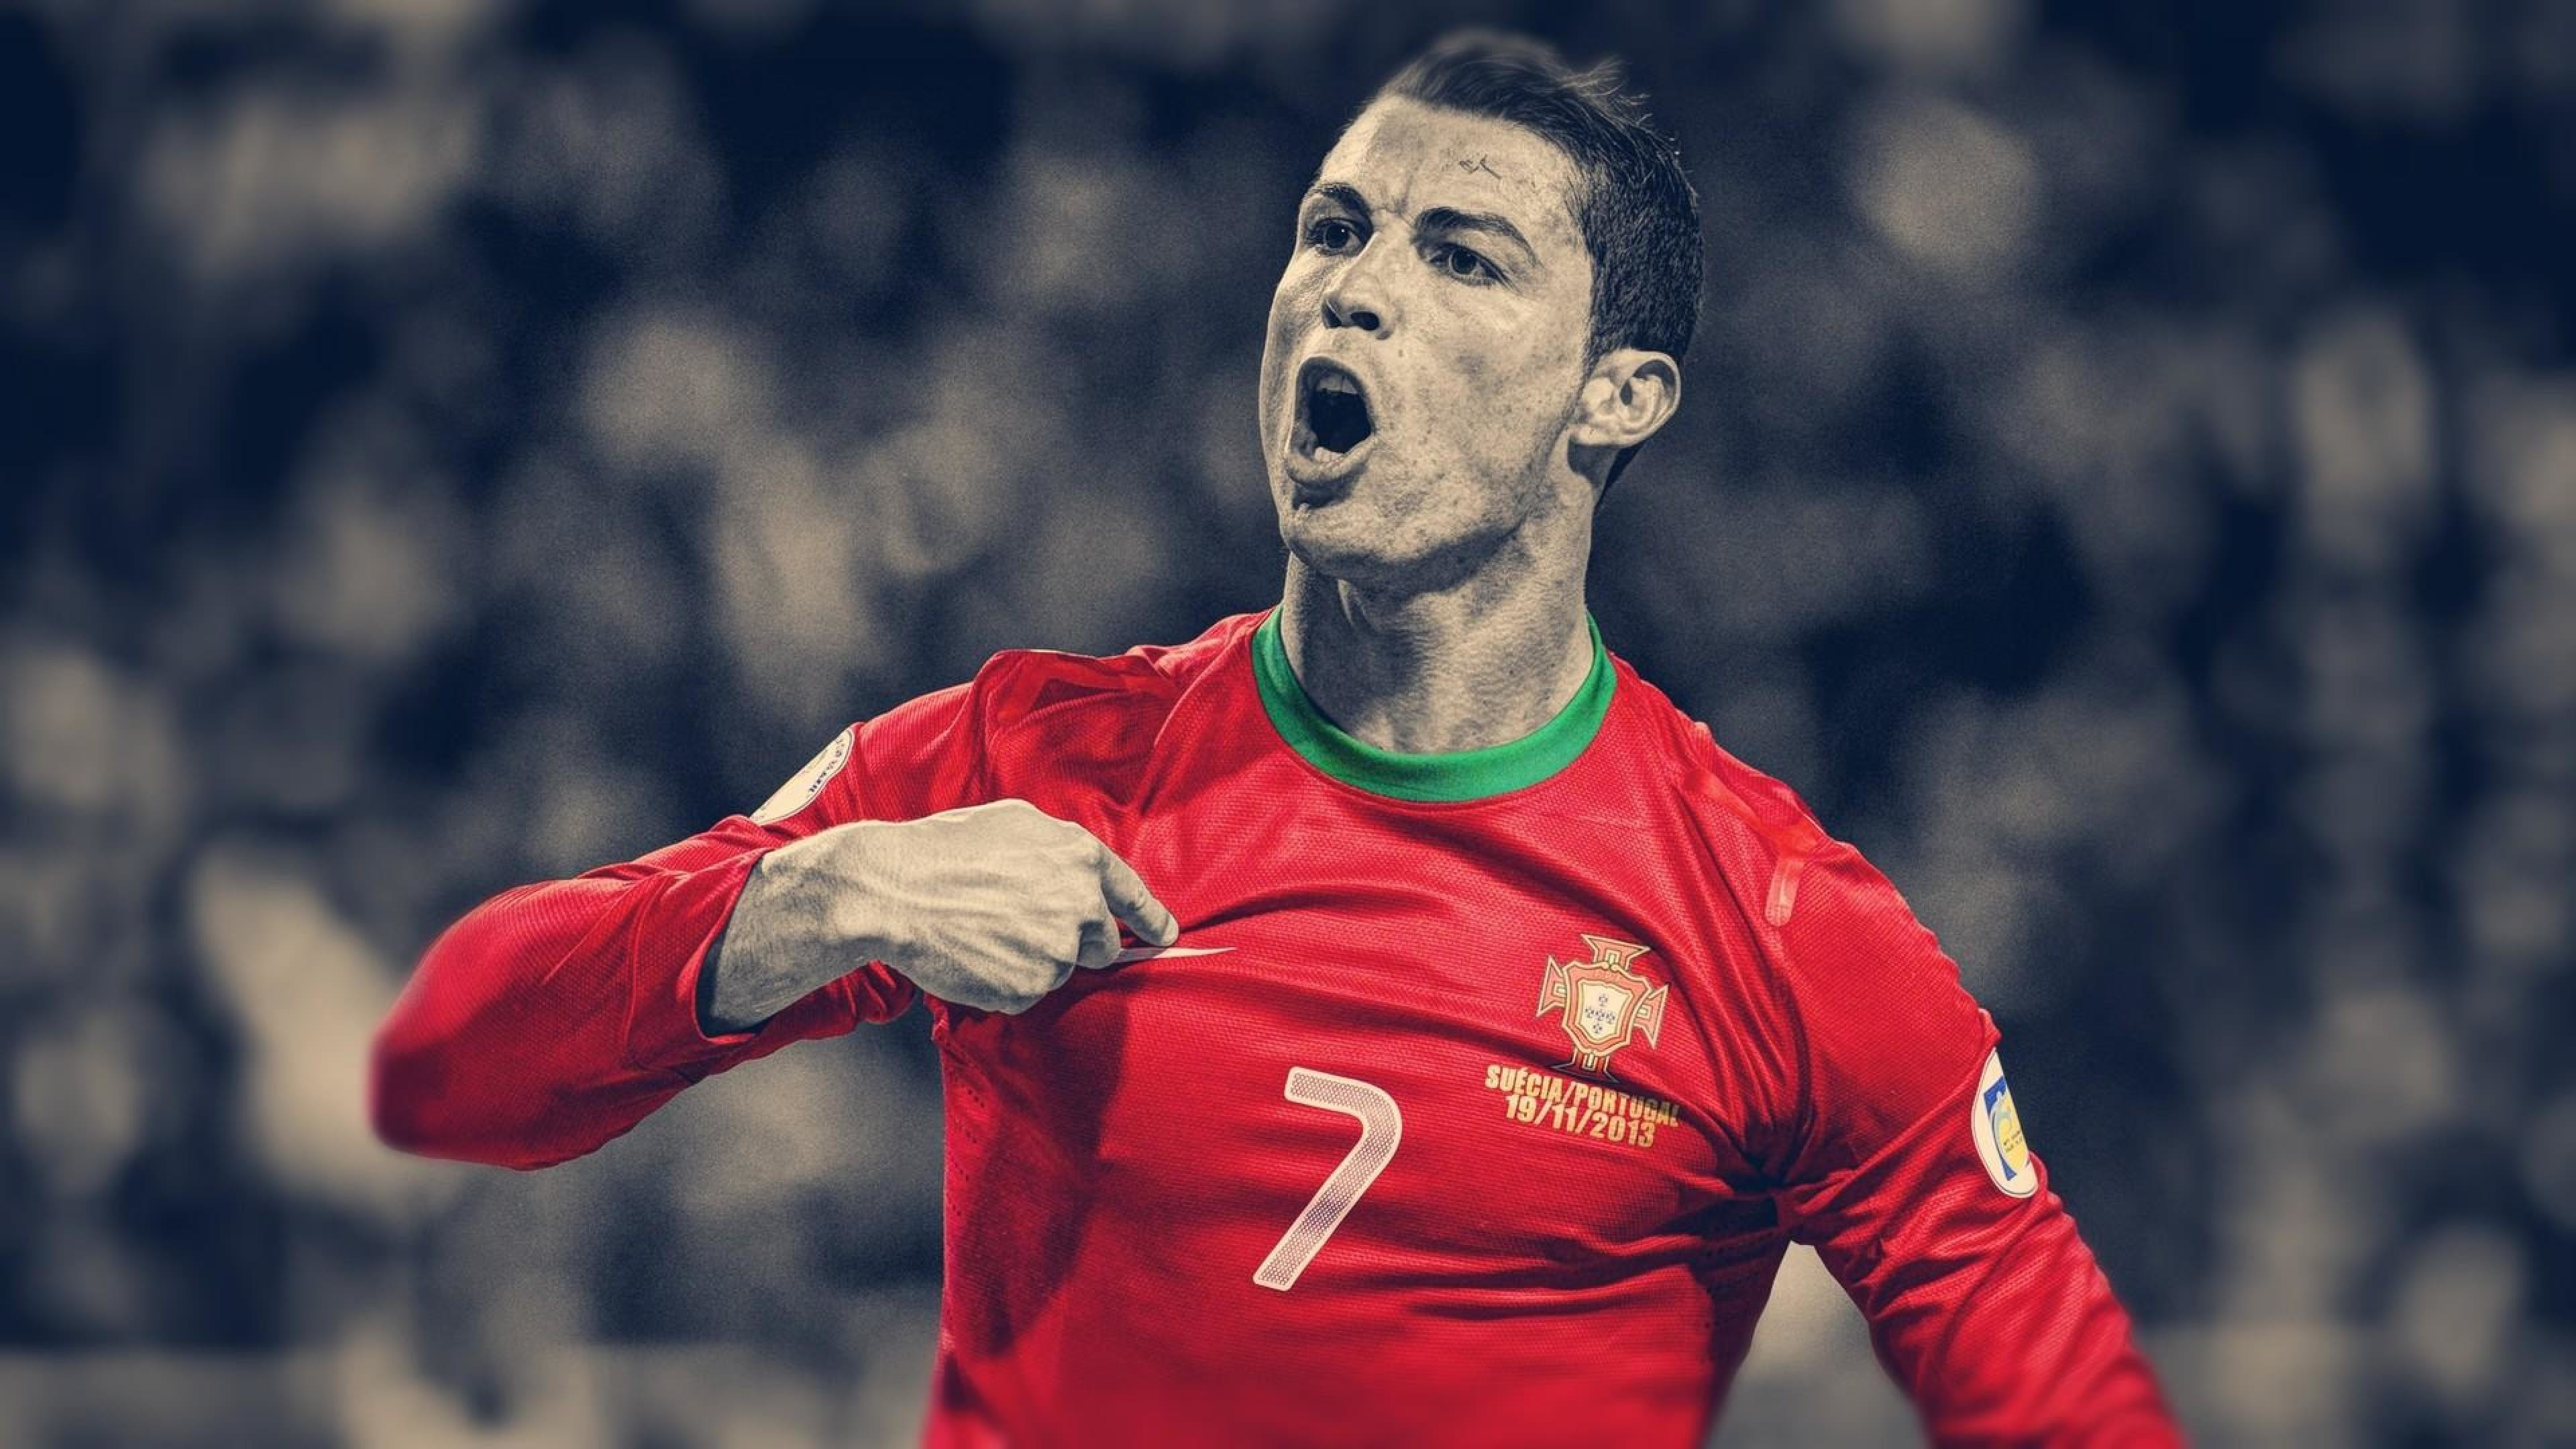 Footballers Wallpapers 69 Images